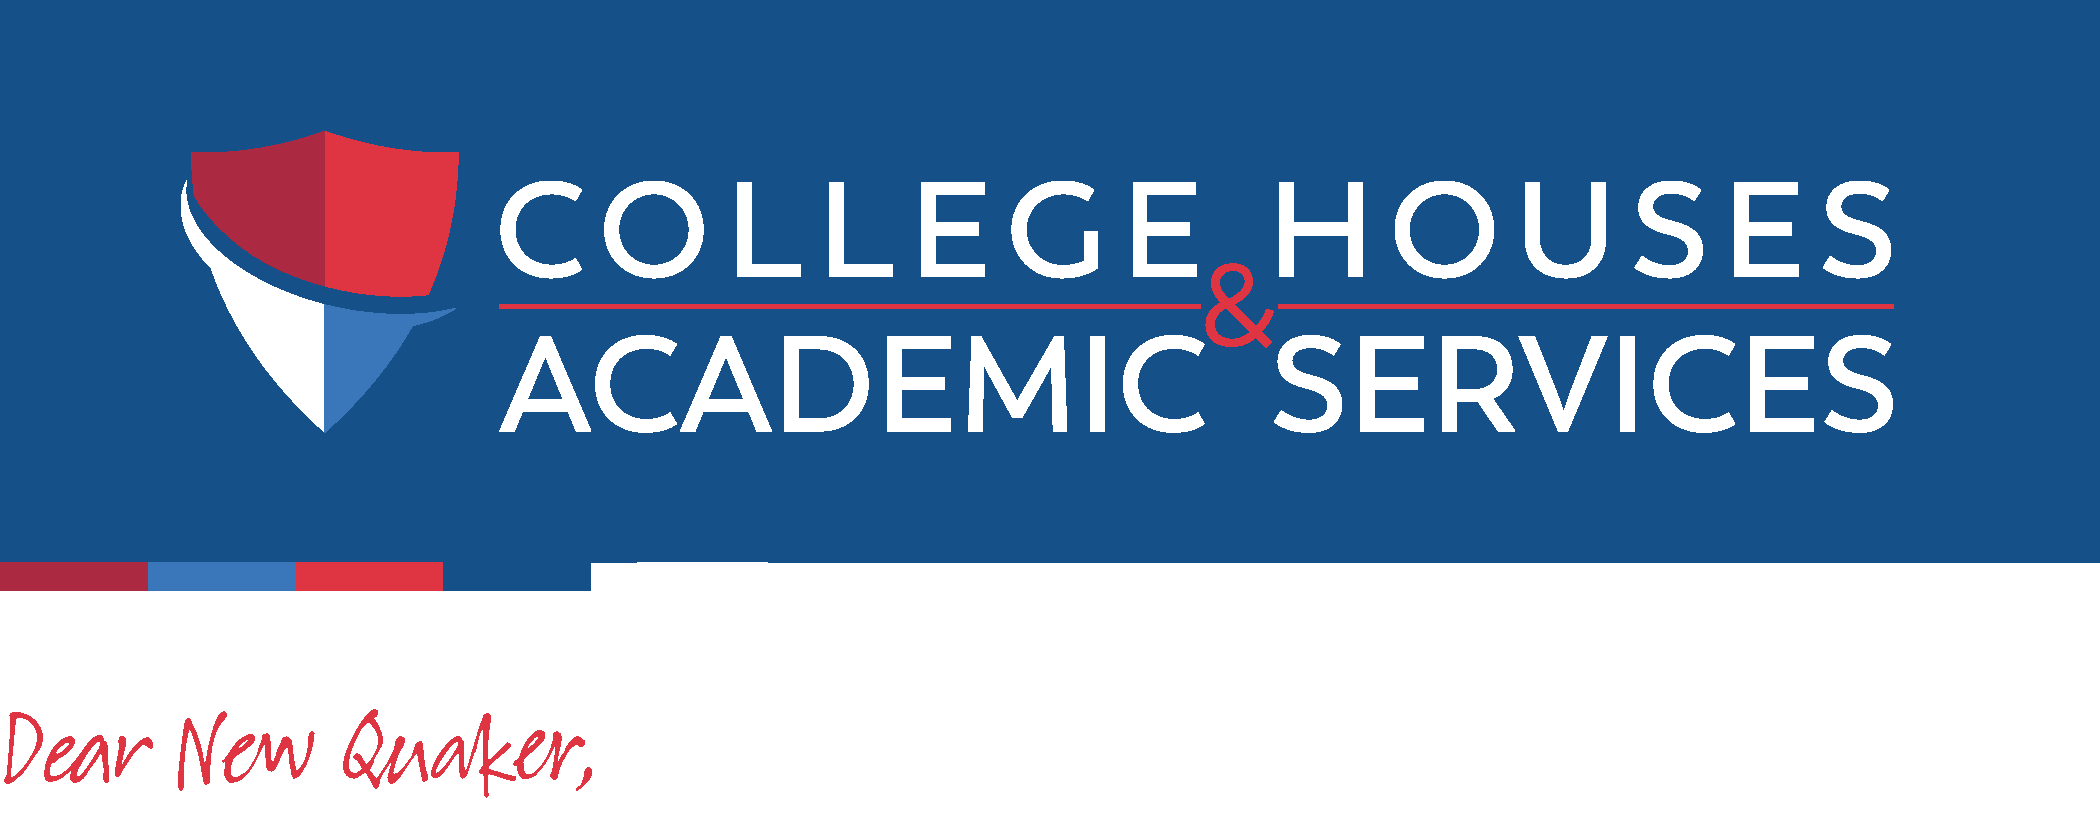 College Houses & Academic Services: Dear New Quaker,